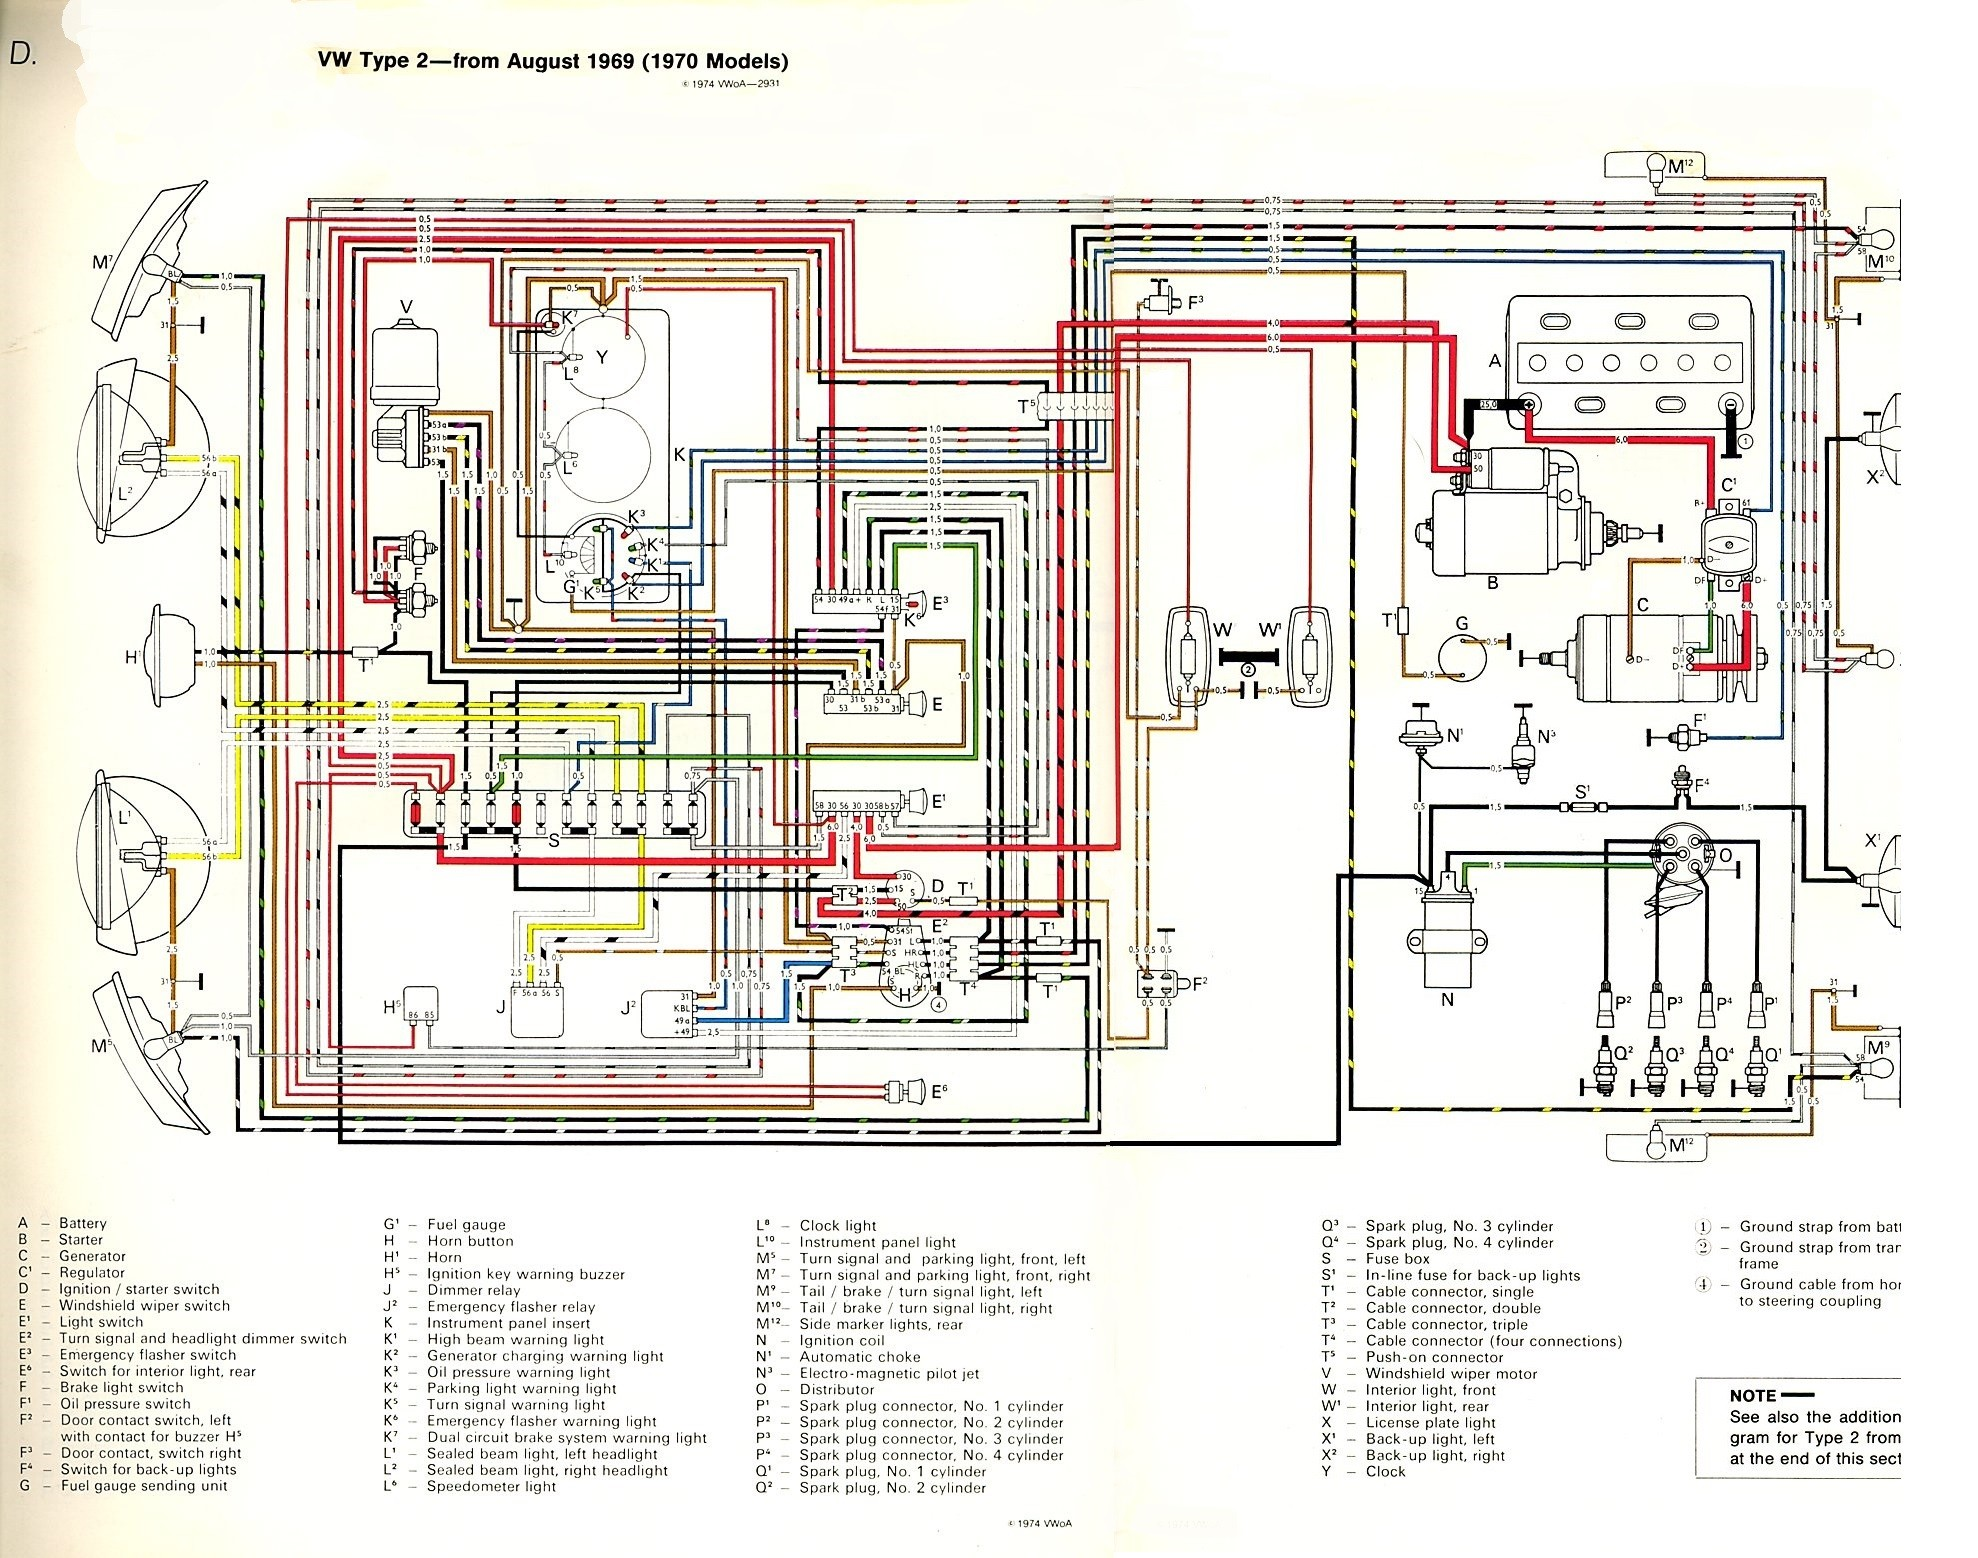 67 beetle flasher relay wiring diagram wiring diagrams folder vw beetle wiring diagram wiring